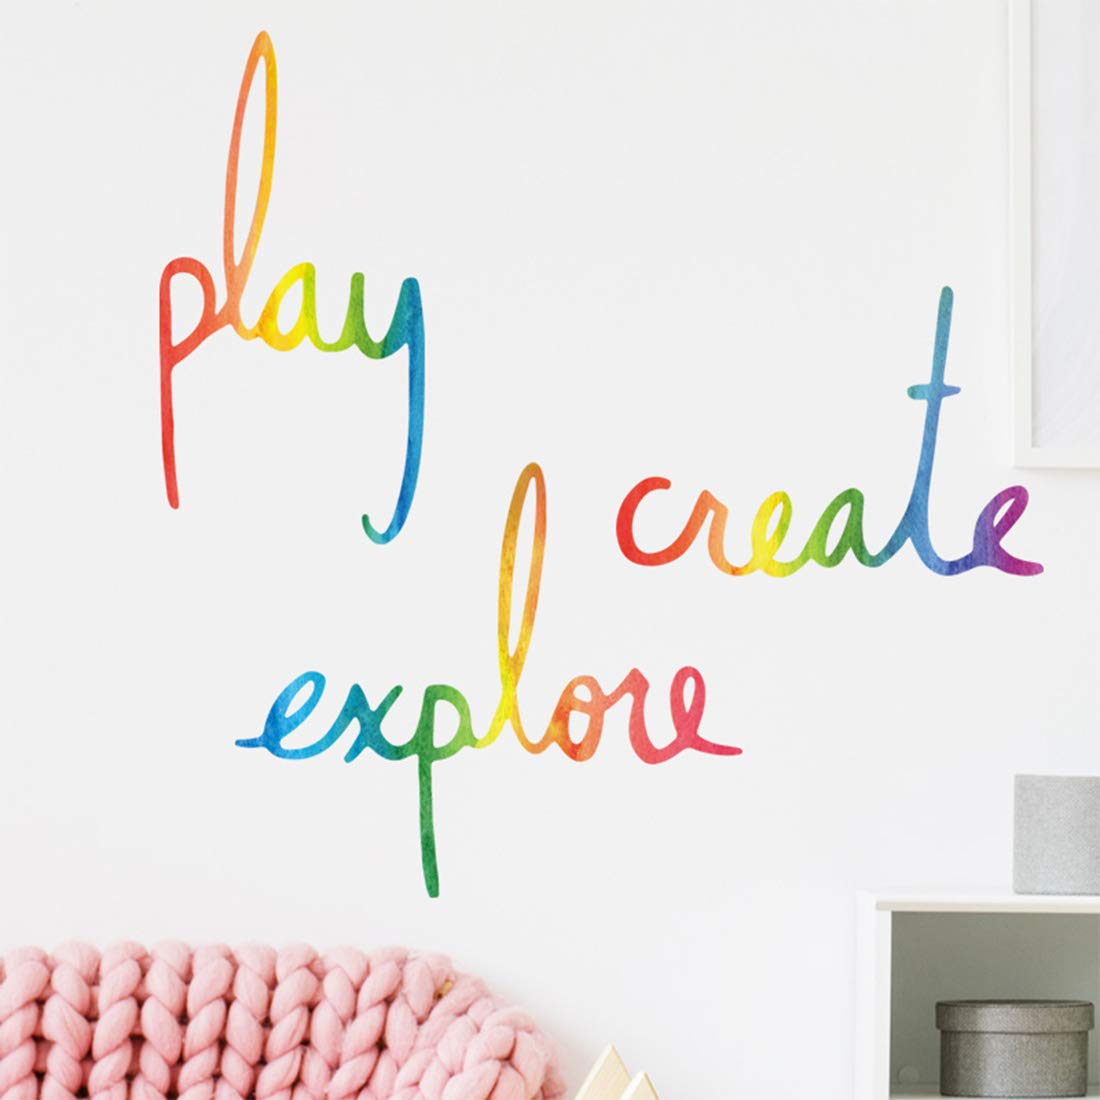 Inspirational Wall Decor Quotes for Living Room – Play Create Explore – Wall Decor for Bedroom Classroom Playroom Nursery Girls Boys Room Wall Decals Decorations